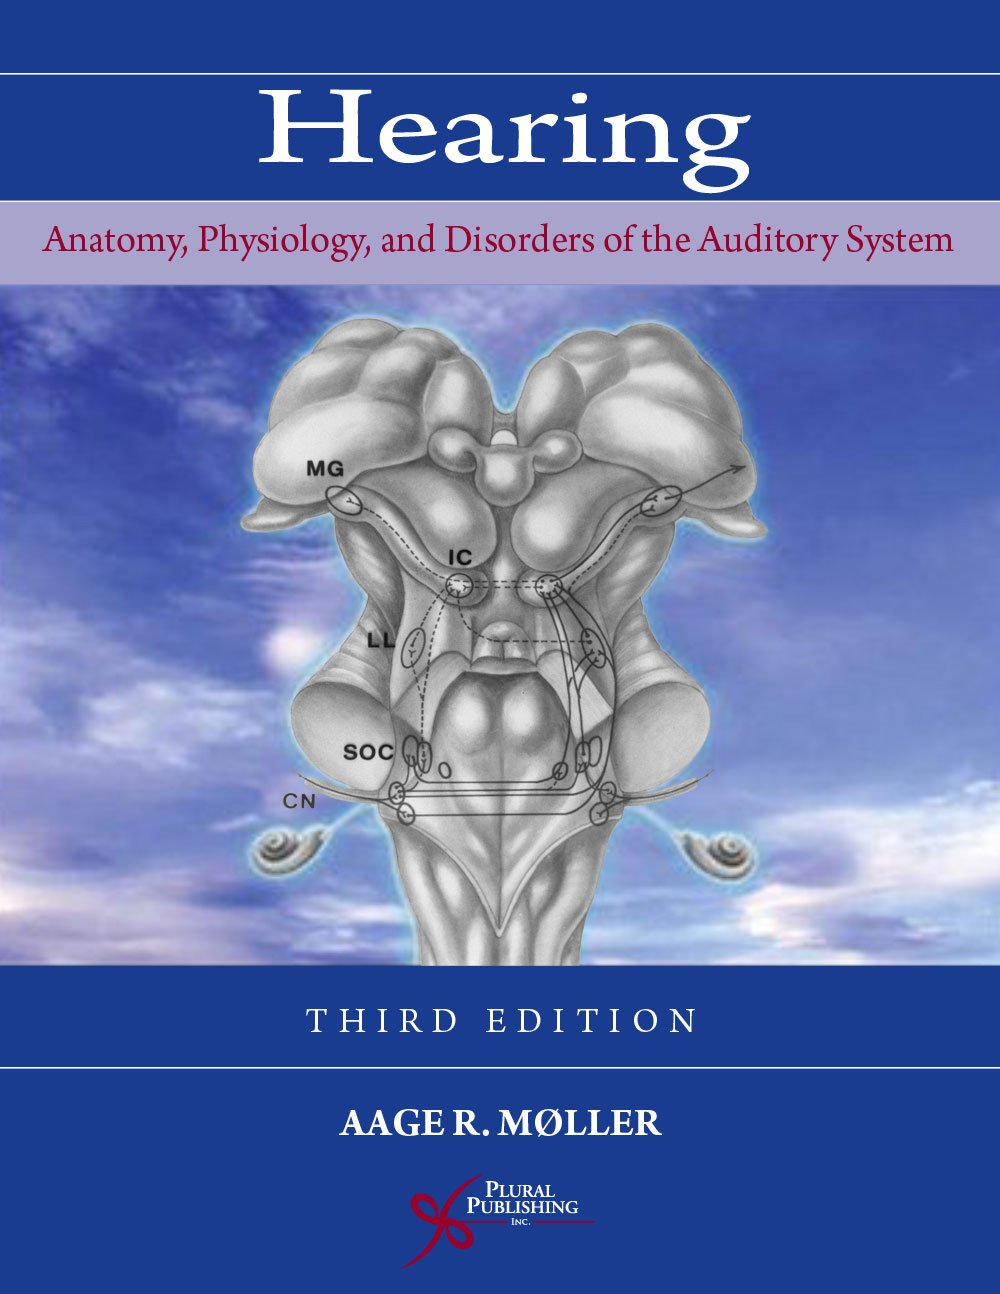 Hearing: Anatomy, Physiology, and Disorders of the Auditory System ...